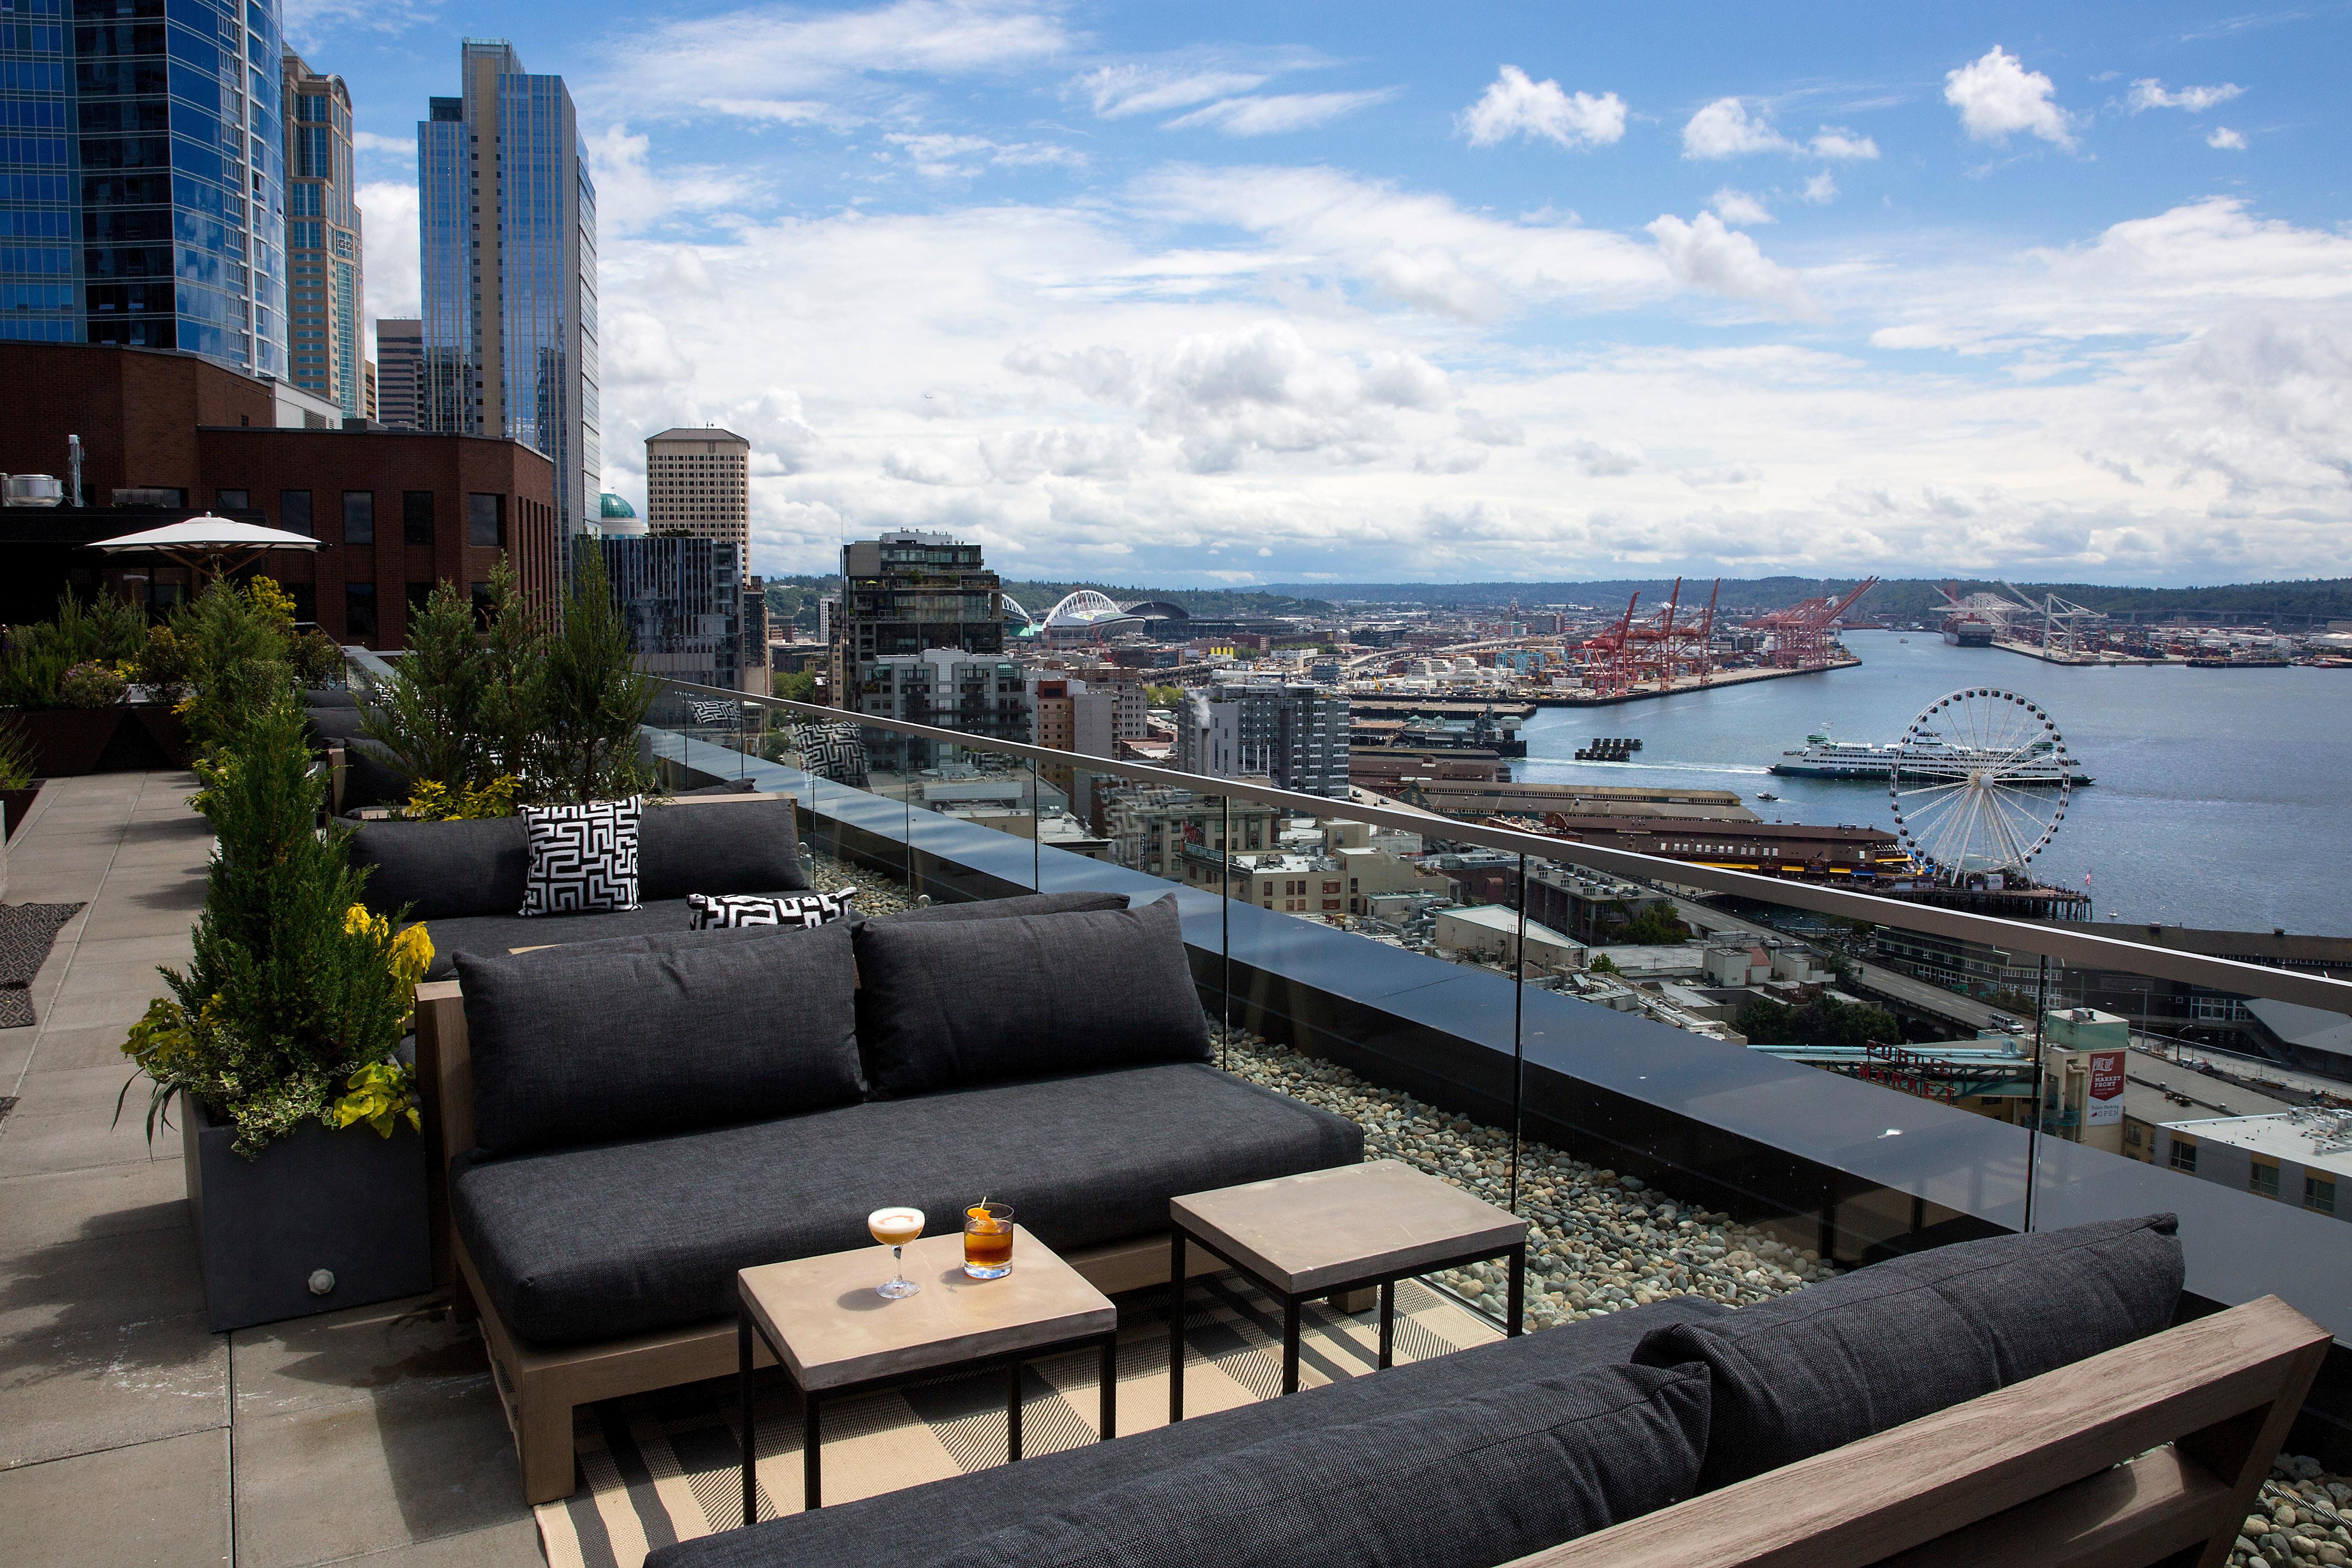 Forget sending out-of-towners to the Space Needle, send them to The Nest at The Thompson Hotel! It first opened a year ago, and quickly became the go-to spot for folks hoping to catch a glimpse of the panoramic views of downtown Seattle skyline, Puget Sound and Olympic Mountains. They've recently relaunched with a redesigned space and completely new furniture and a brand new food menu - but don't worry, the view is still the same! The Nest is renowned local chef Josh Henderson's rooftop bar and lounge located in the Thompson Seattle hotel, and is open to the public every day between 3 p.m. to midnight.  (Image: Sy Bean / Seattle Refined)